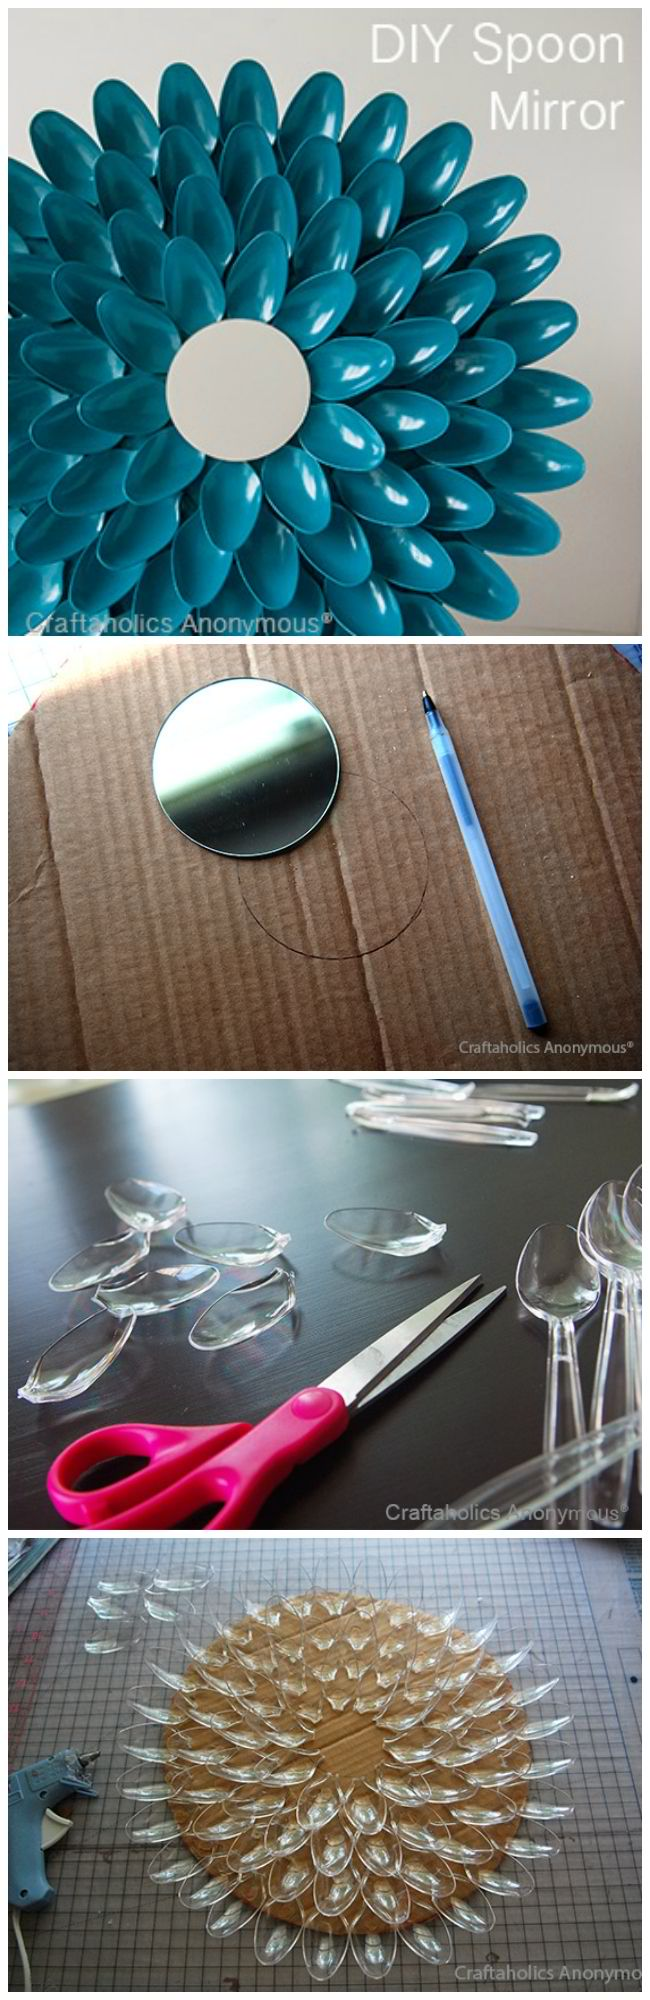 Spoon Mirror Tutorial